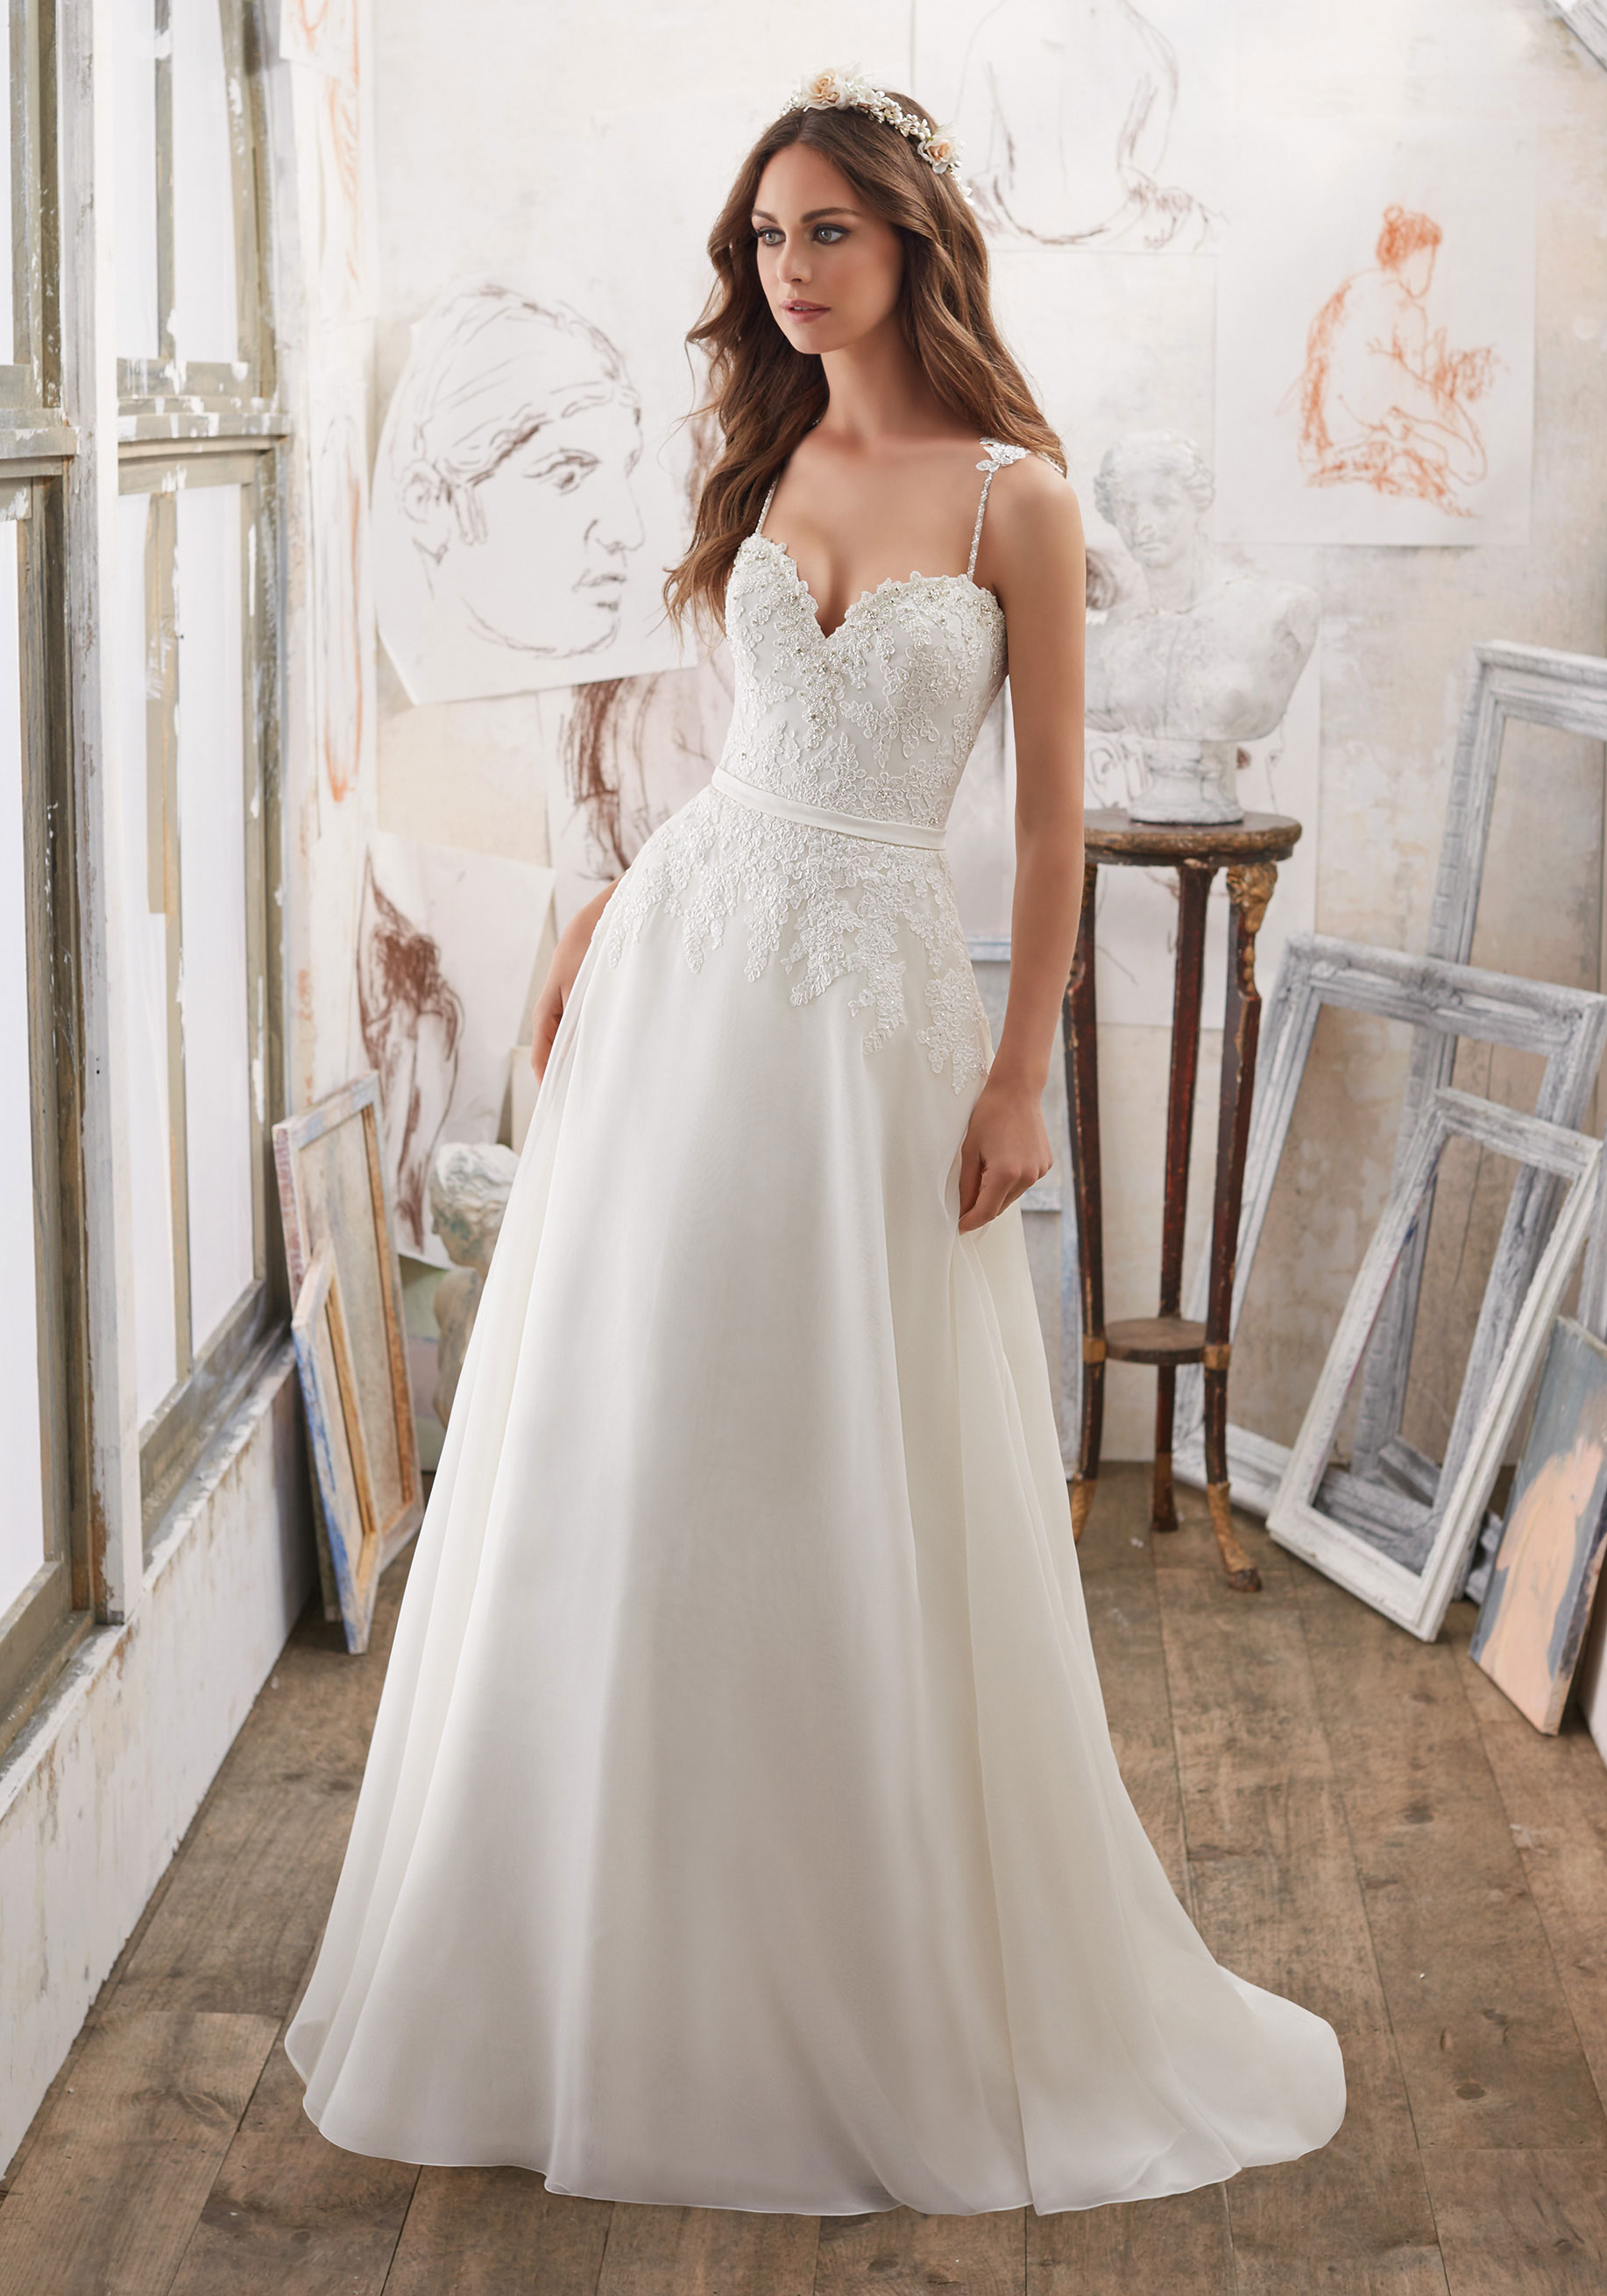 Mori Lee Blu 5514 Ivory // Retail Price $1170 | Our Price $819